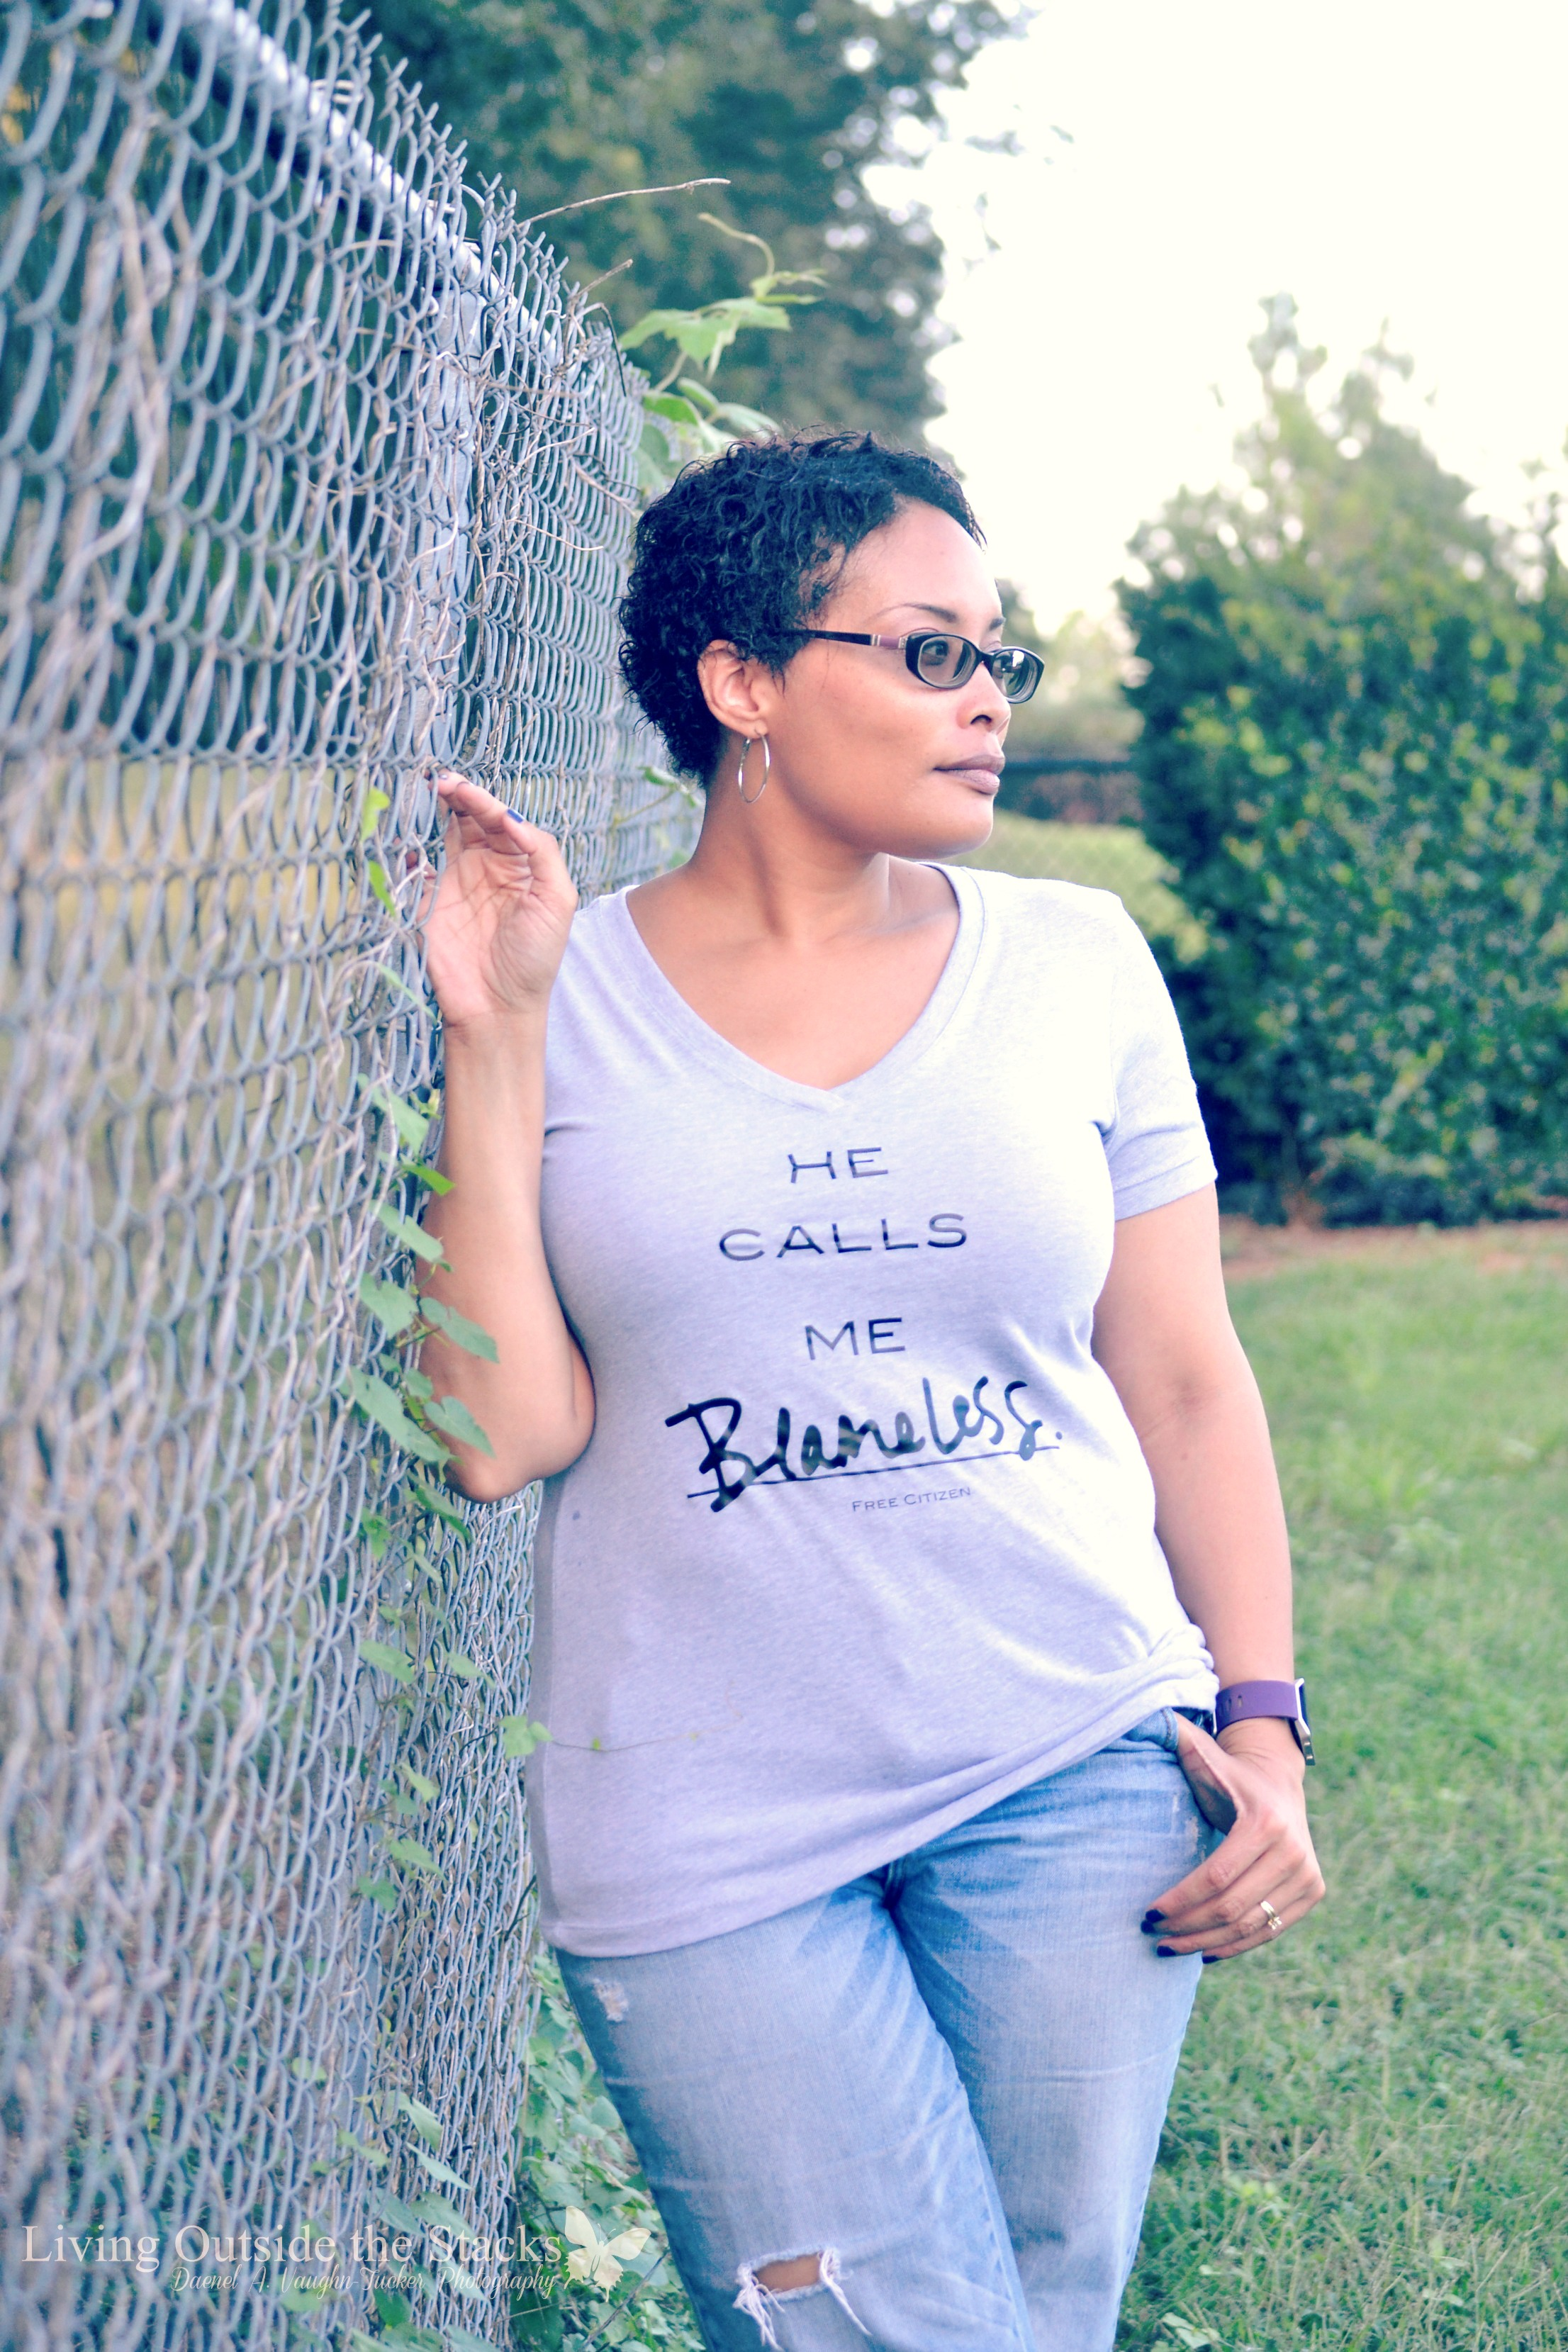 He Calls Me Tee by Free Citizen {living outside the stacks} #FreeCitizen #livefree #JesusGirl